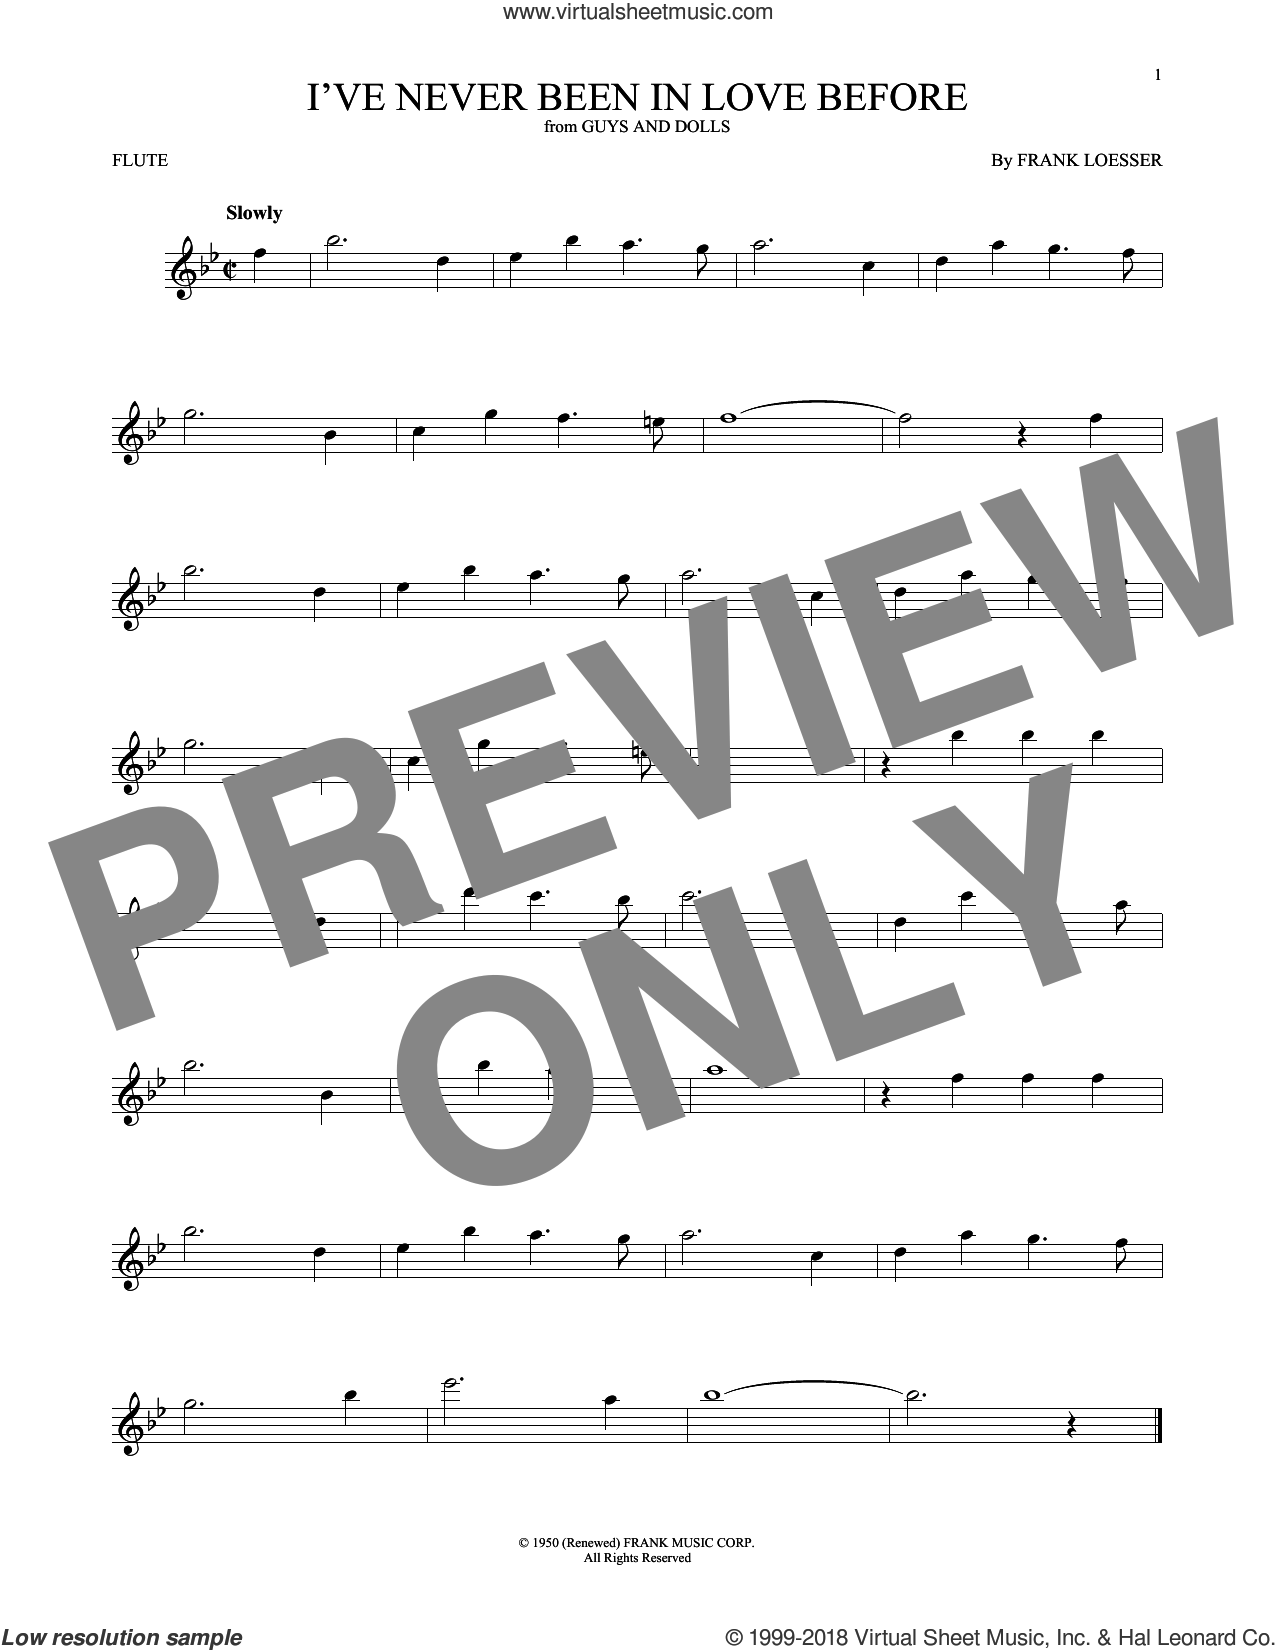 I've Never Been In Love Before sheet music for flute solo by Frank Loesser, Billy Eckstine, Chet Baker and Stan Kenton, intermediate skill level